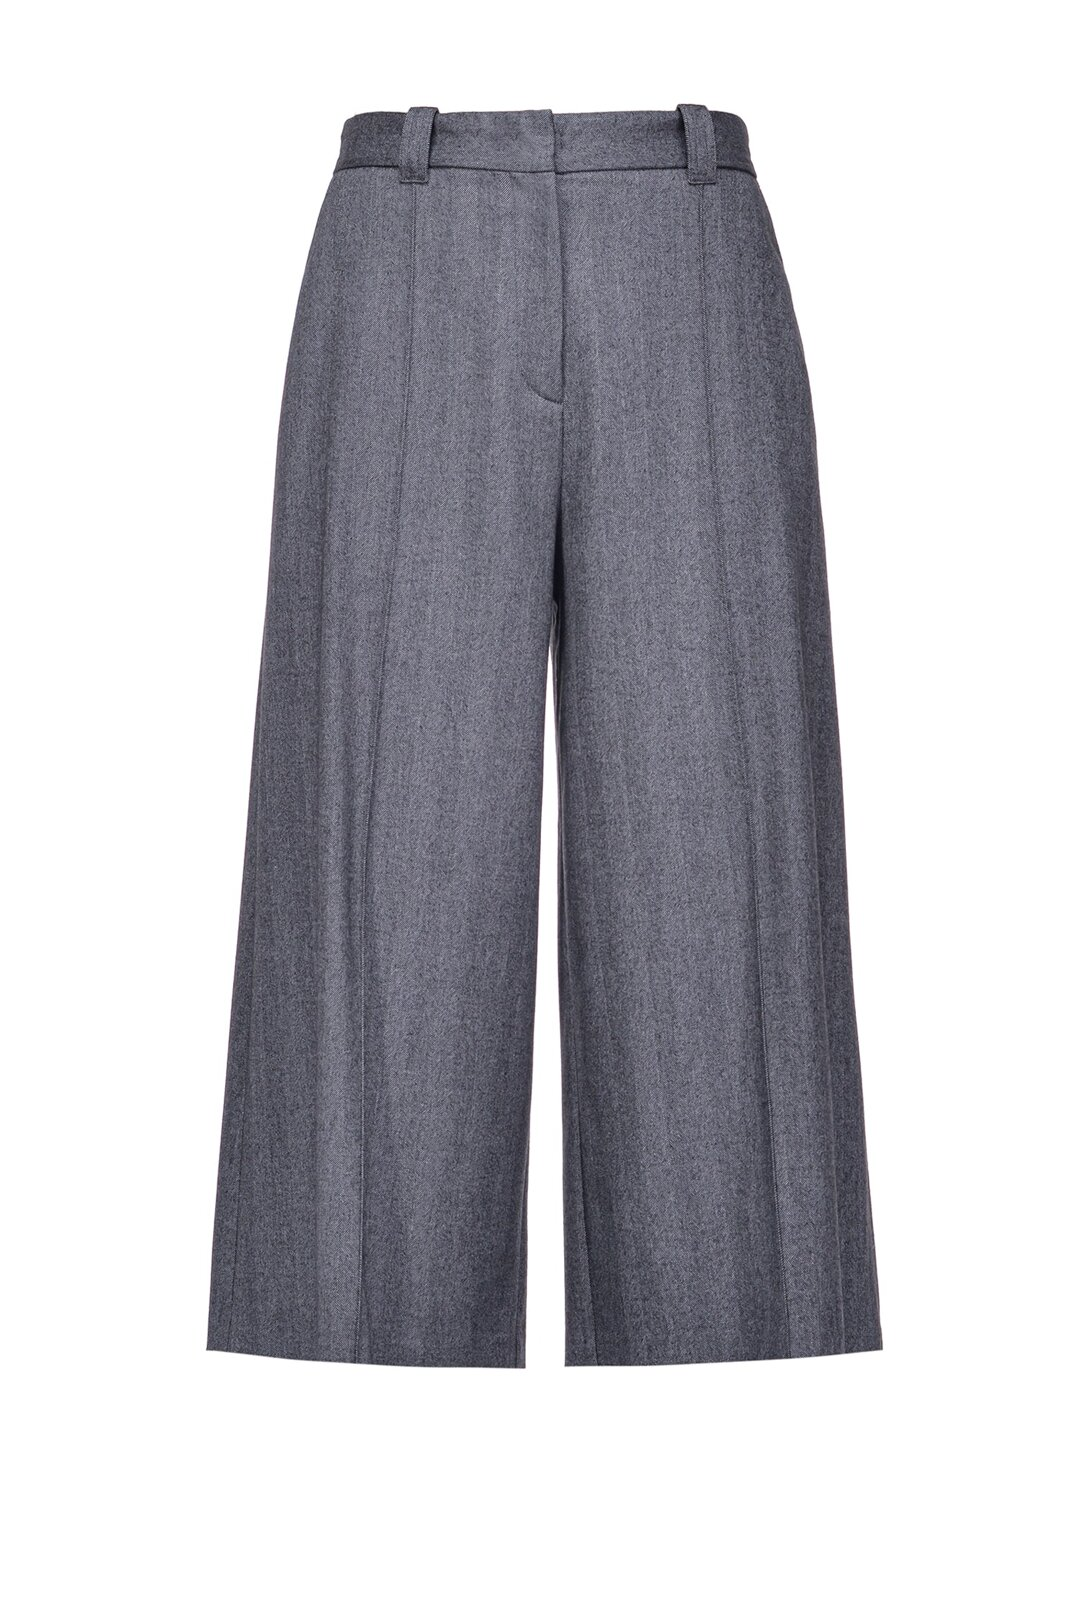 Chevron Design Culotte Pants - Pinko